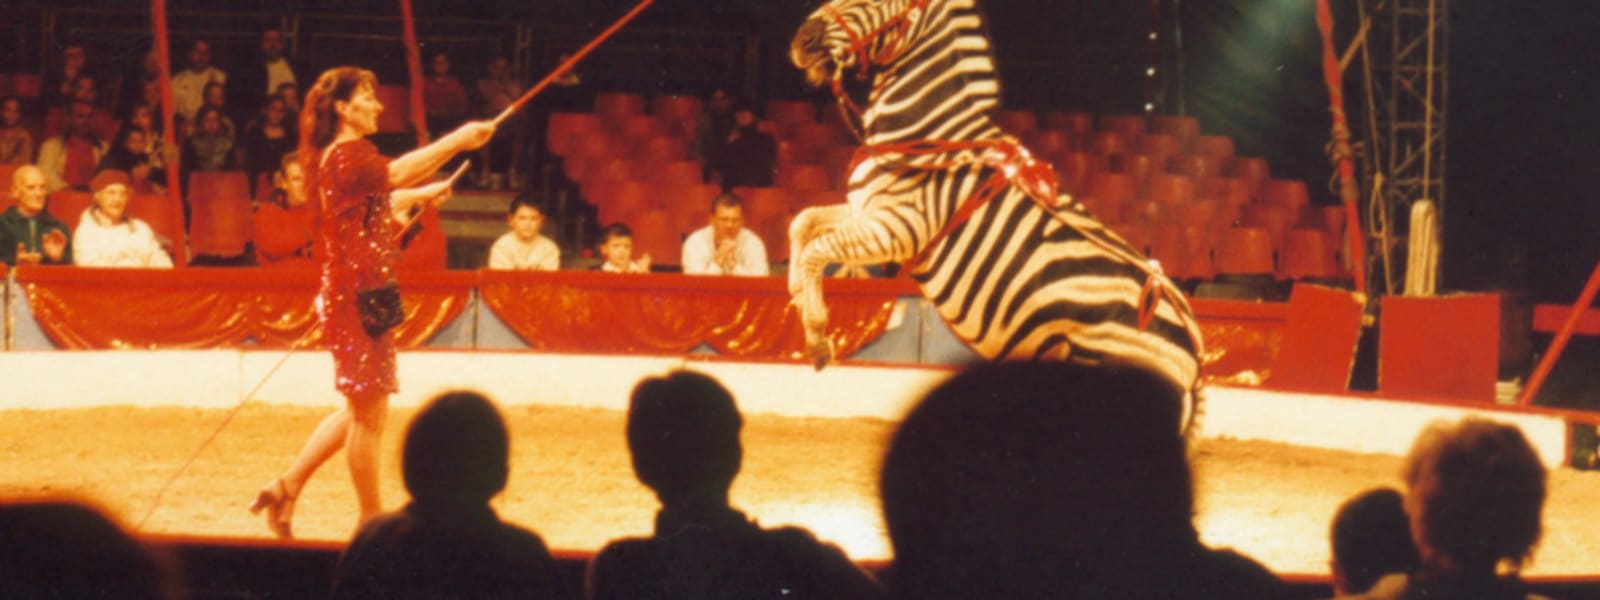 BREAKING: Wales to BAN wild animal circuses